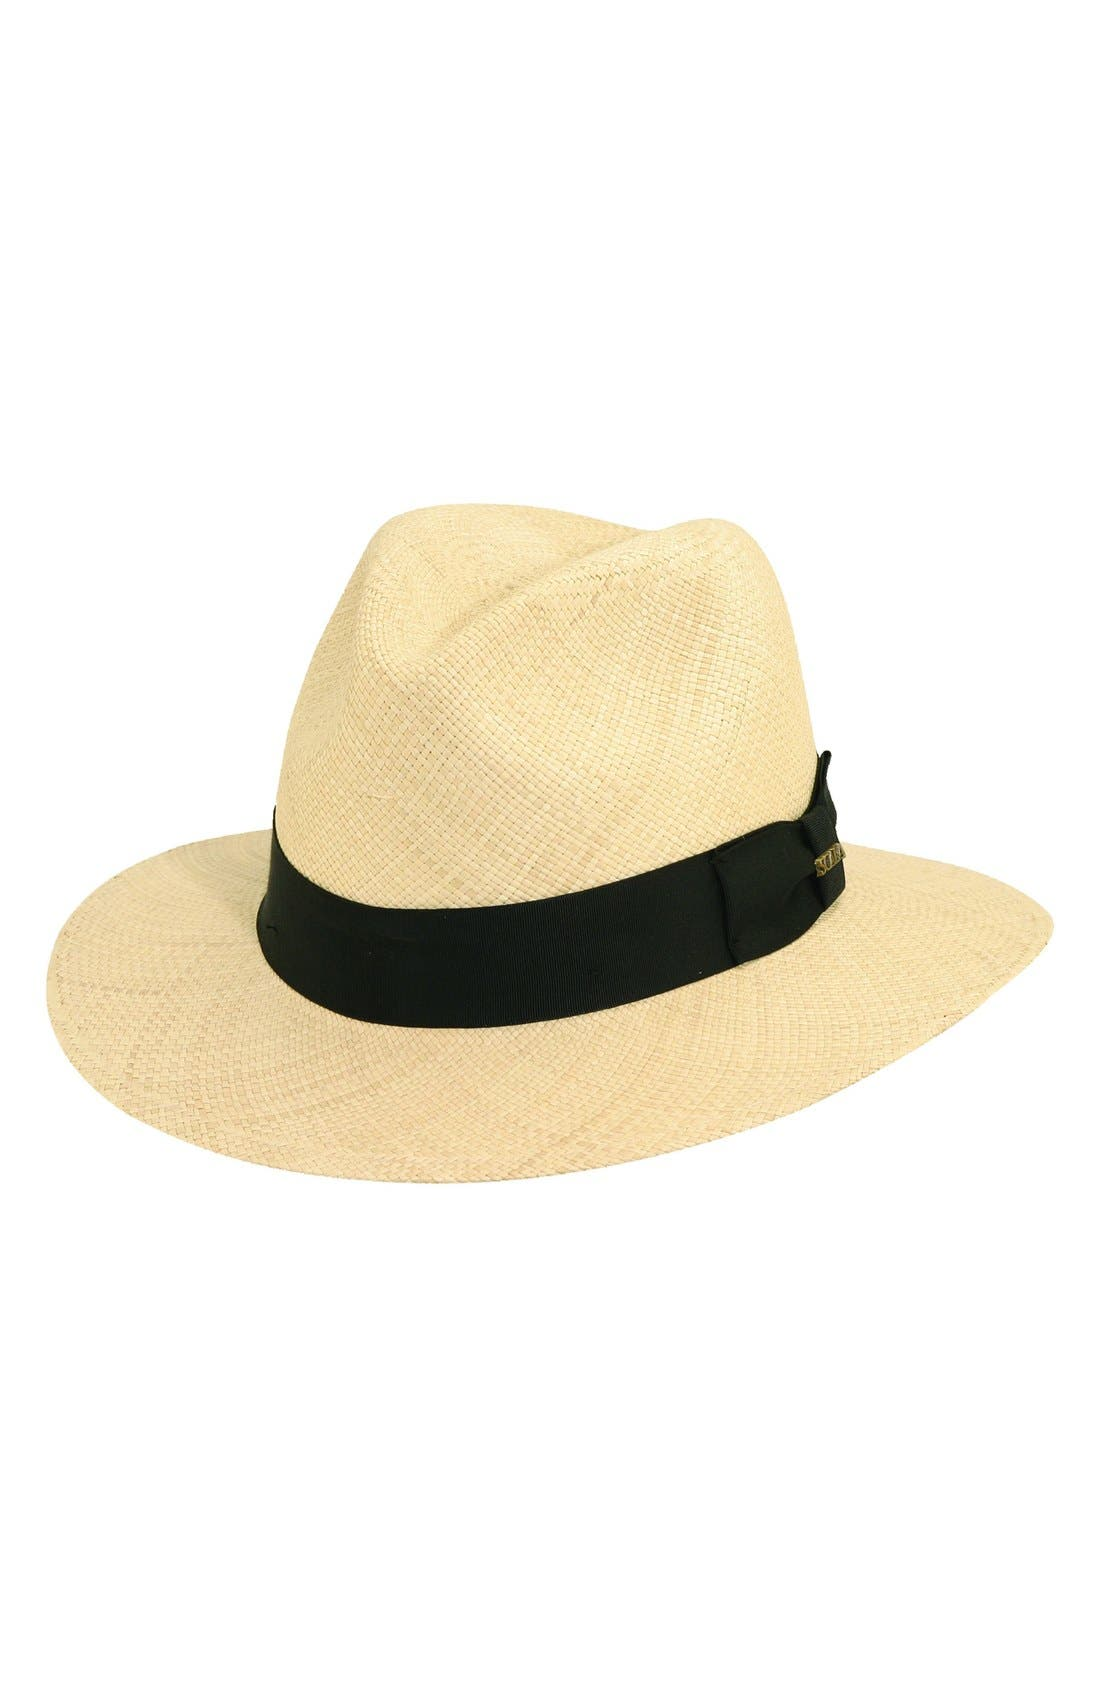 Panama Straw Safari Hat,                             Main thumbnail 1, color,                             101